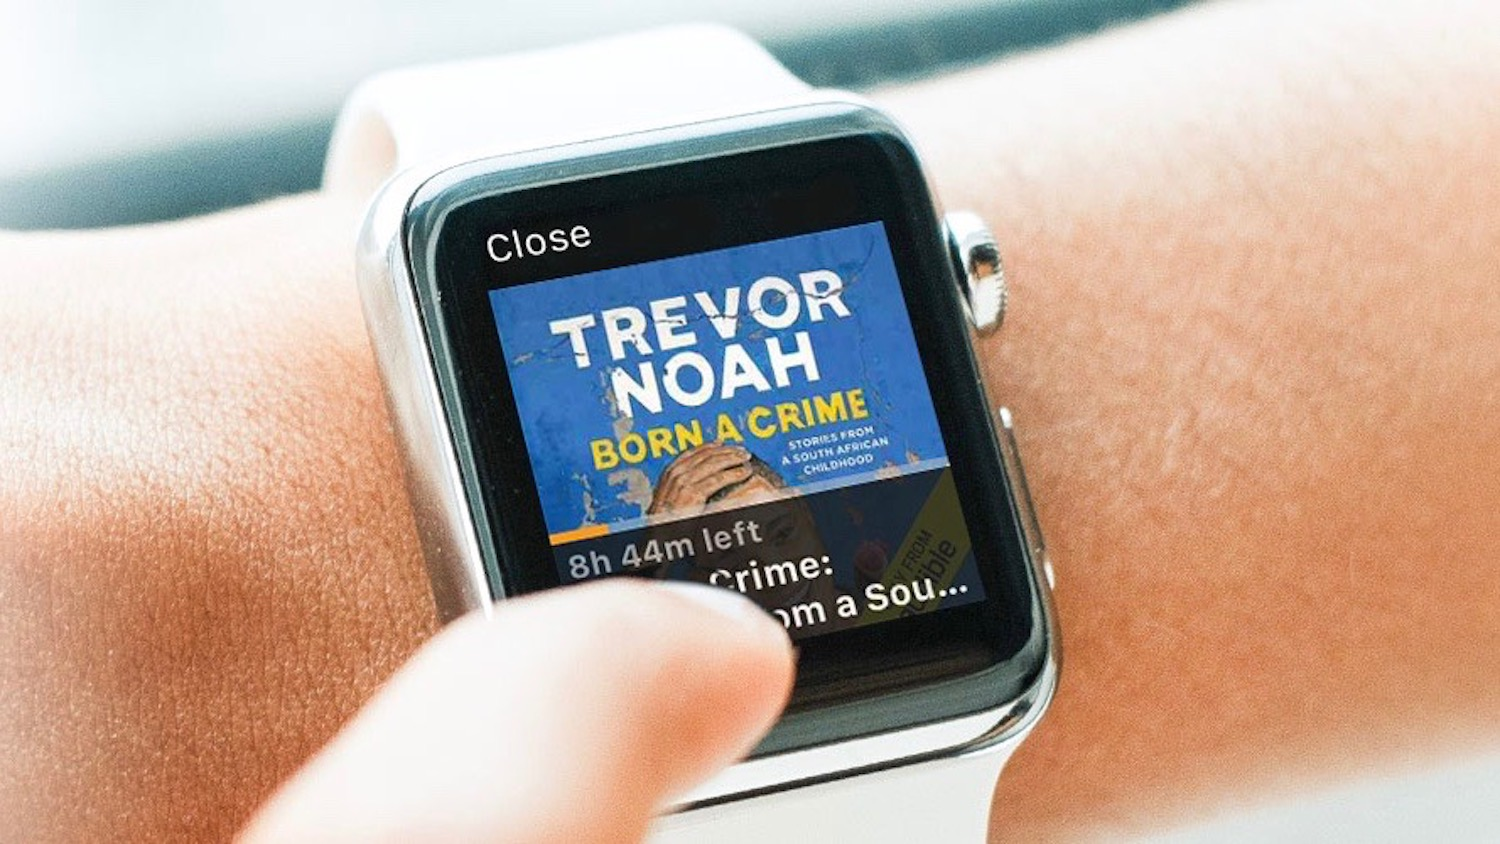 Apple Watch: How to sync audiobooks with Audible - 9to5Mac